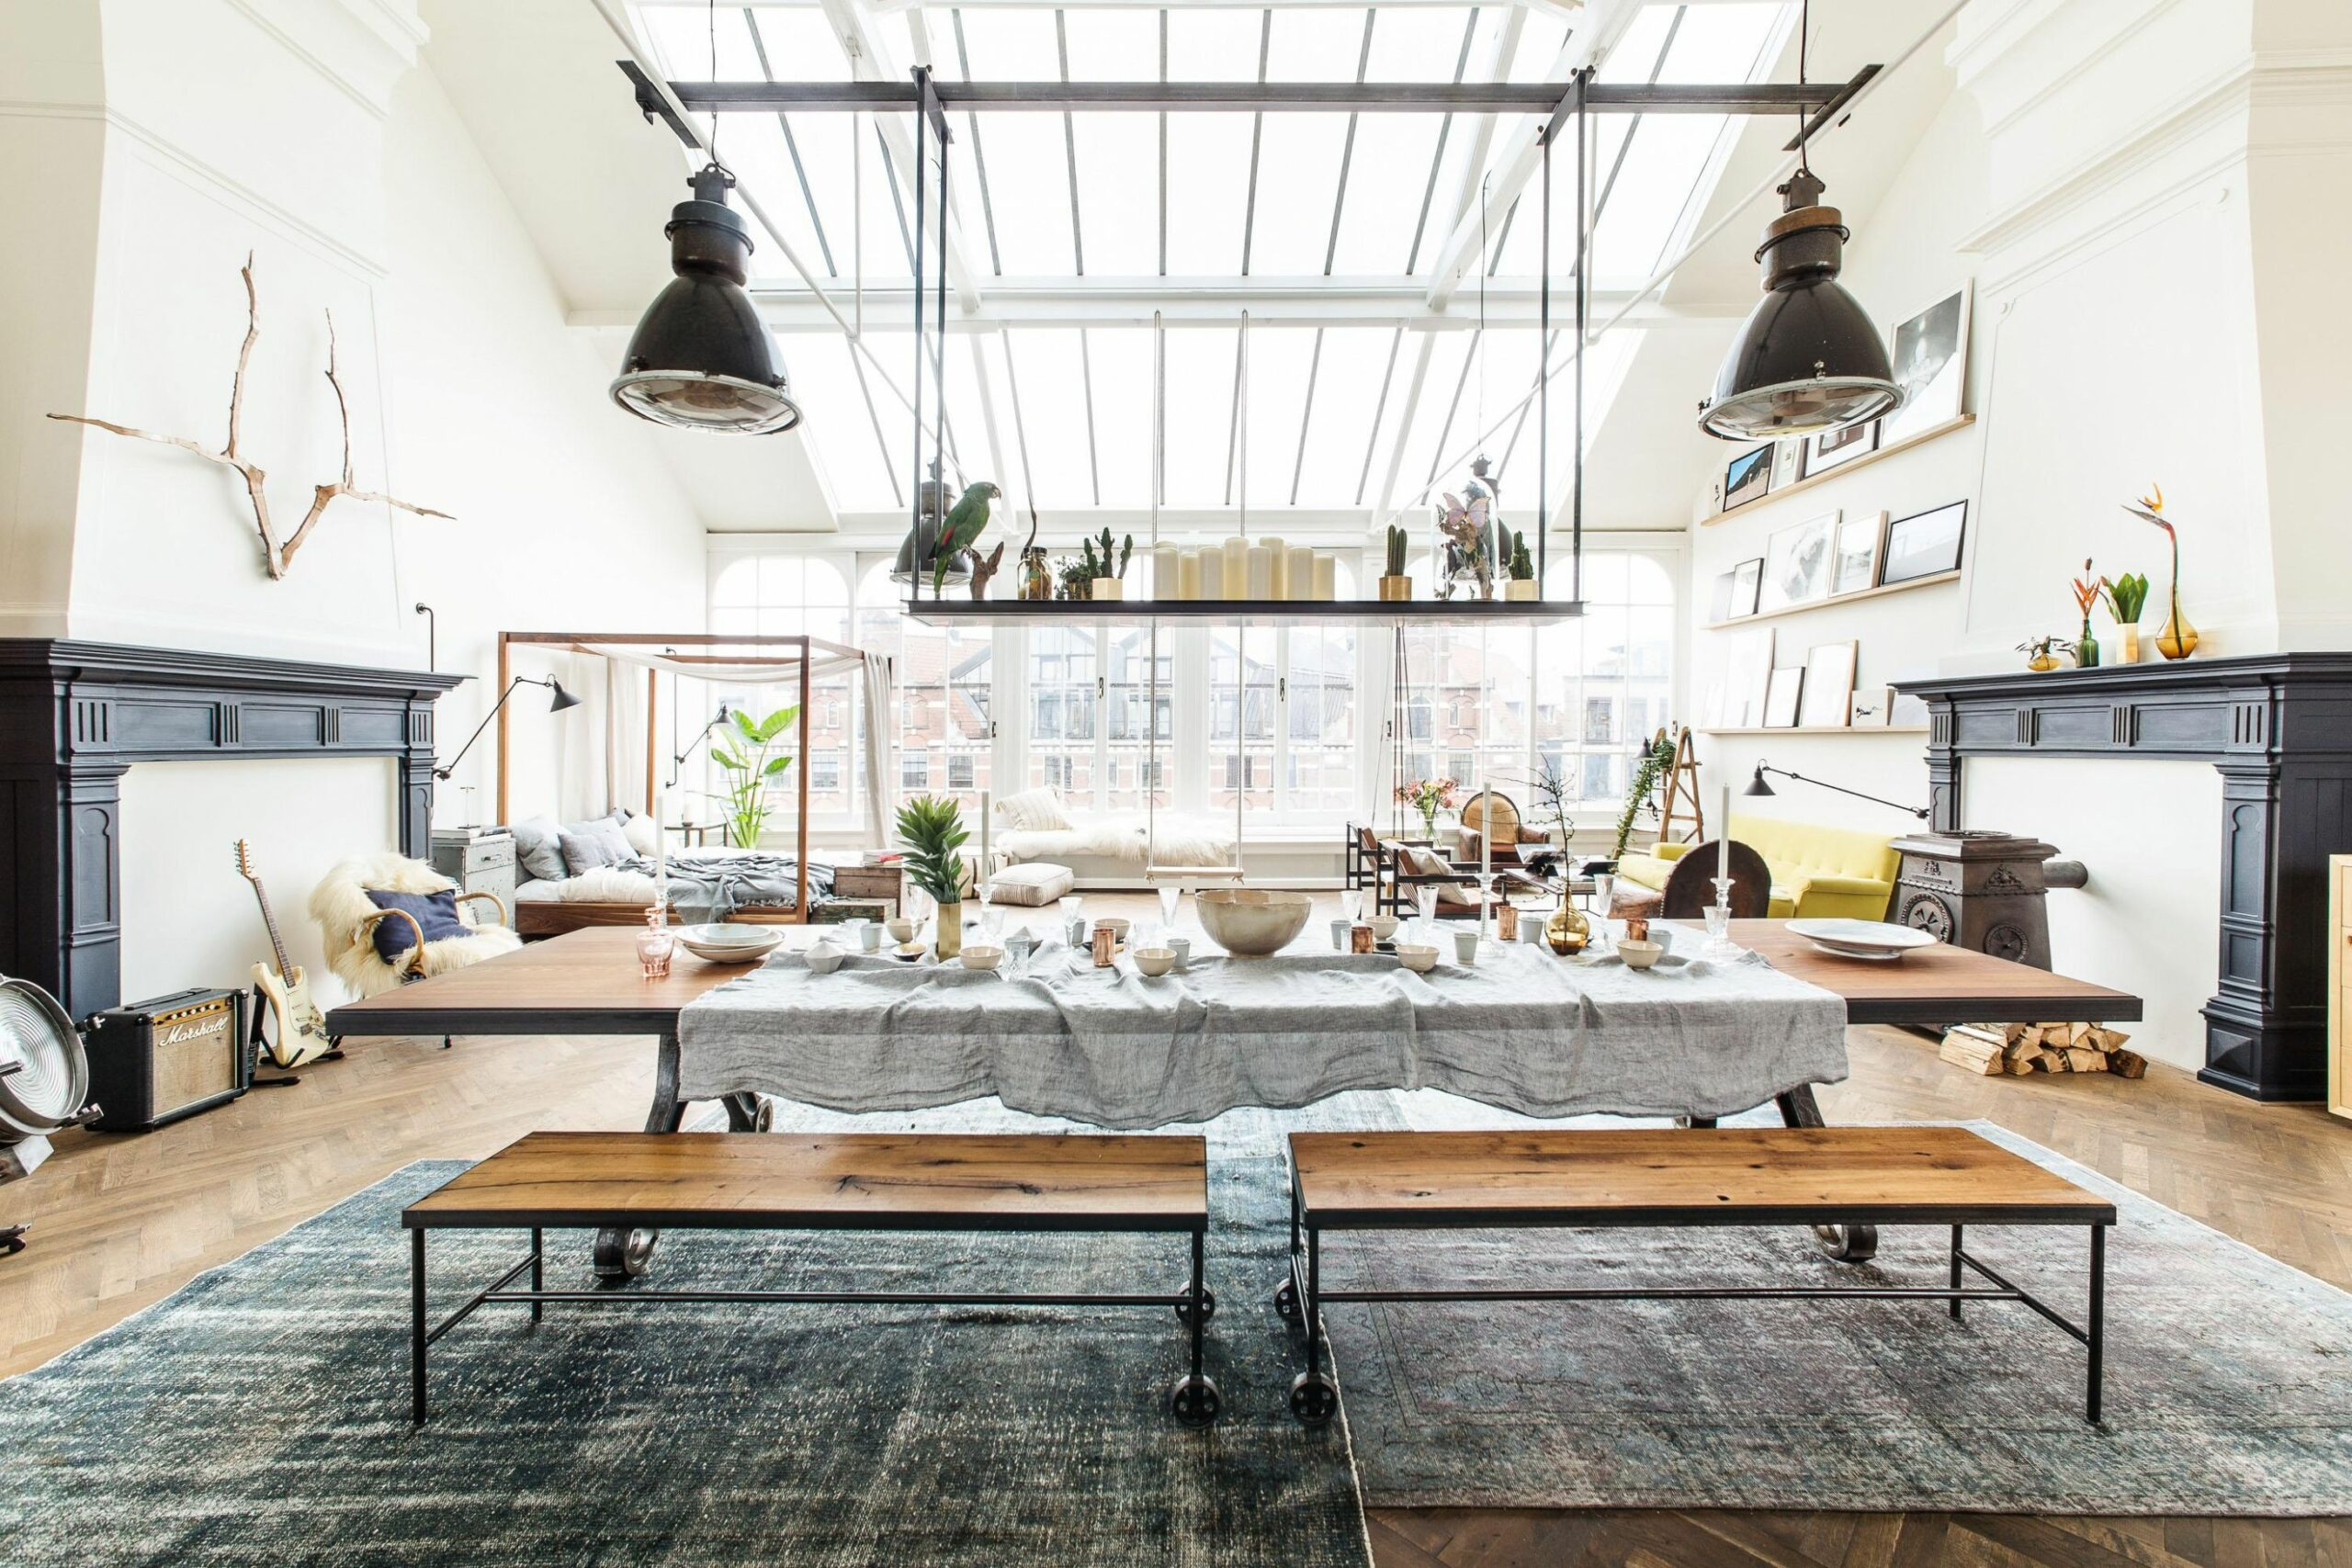 Open studio loft apartment design features large skylight and ...